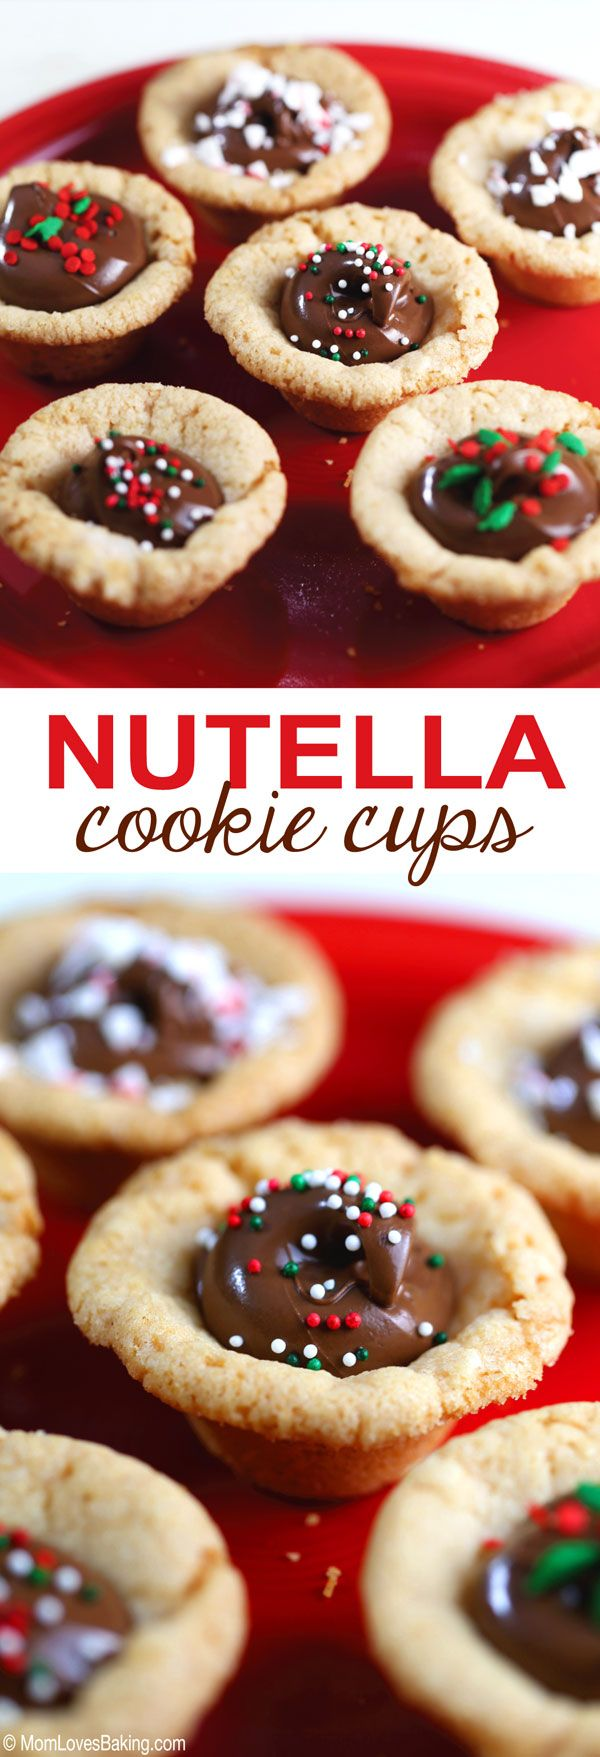 Nutella Cookie Cups are literally as easy as 1-2-3! With just 3 ingredients, you can have them done in no time! And you don't have to STRESS OUT! Kids can make them too!